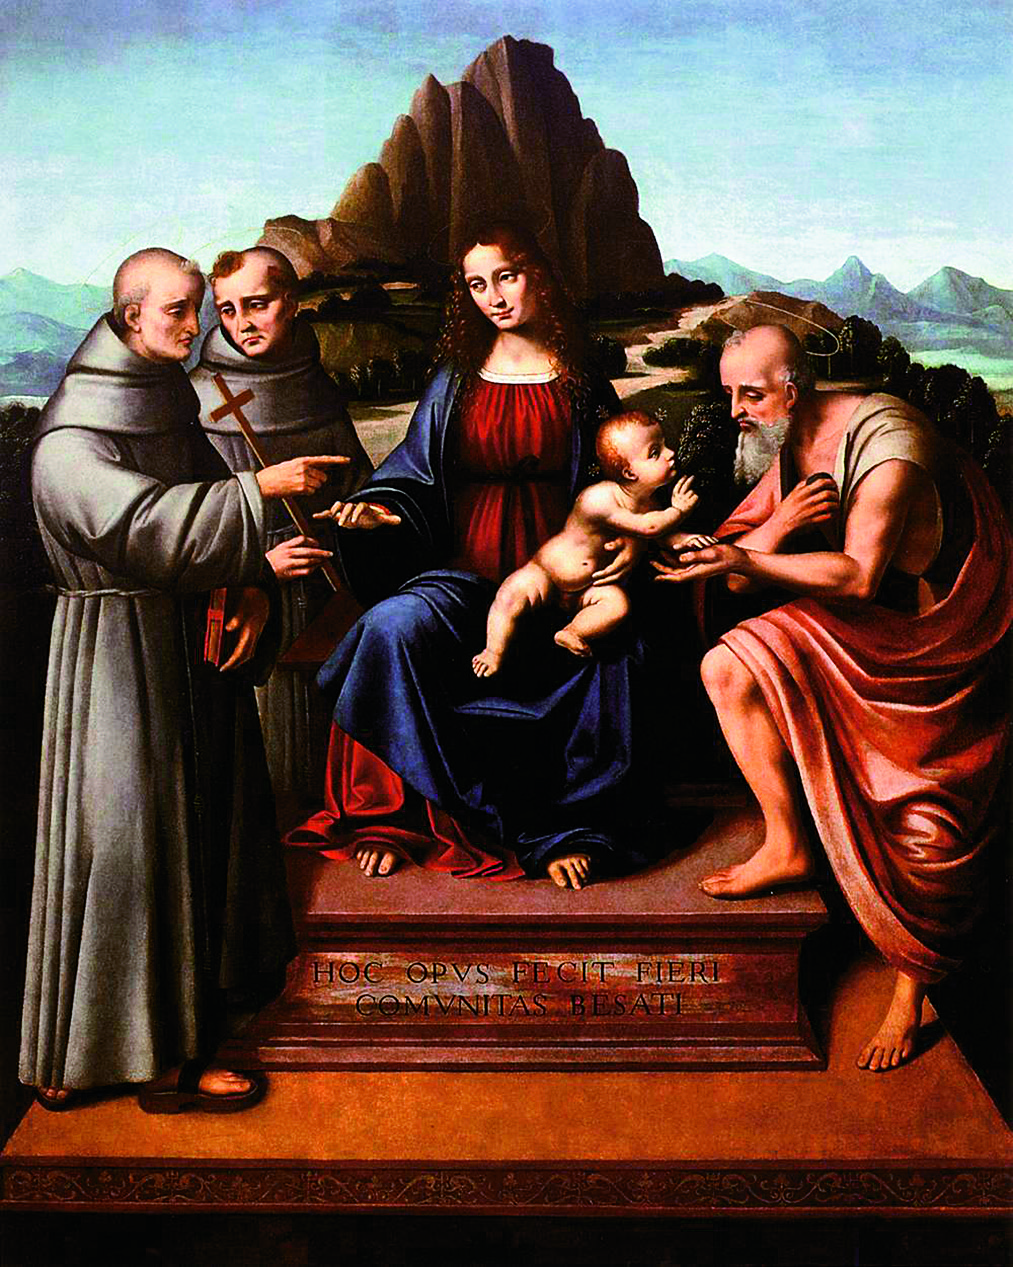 Virgin and Child Enthroned with Saints, ca. 1524. Hollis notes, The stylized mountain directly behind the Holy Pair almost appears to be an extension of their throne, with more naturalistic mountains also prominent in the background. [Image] Marco d'Oggiono